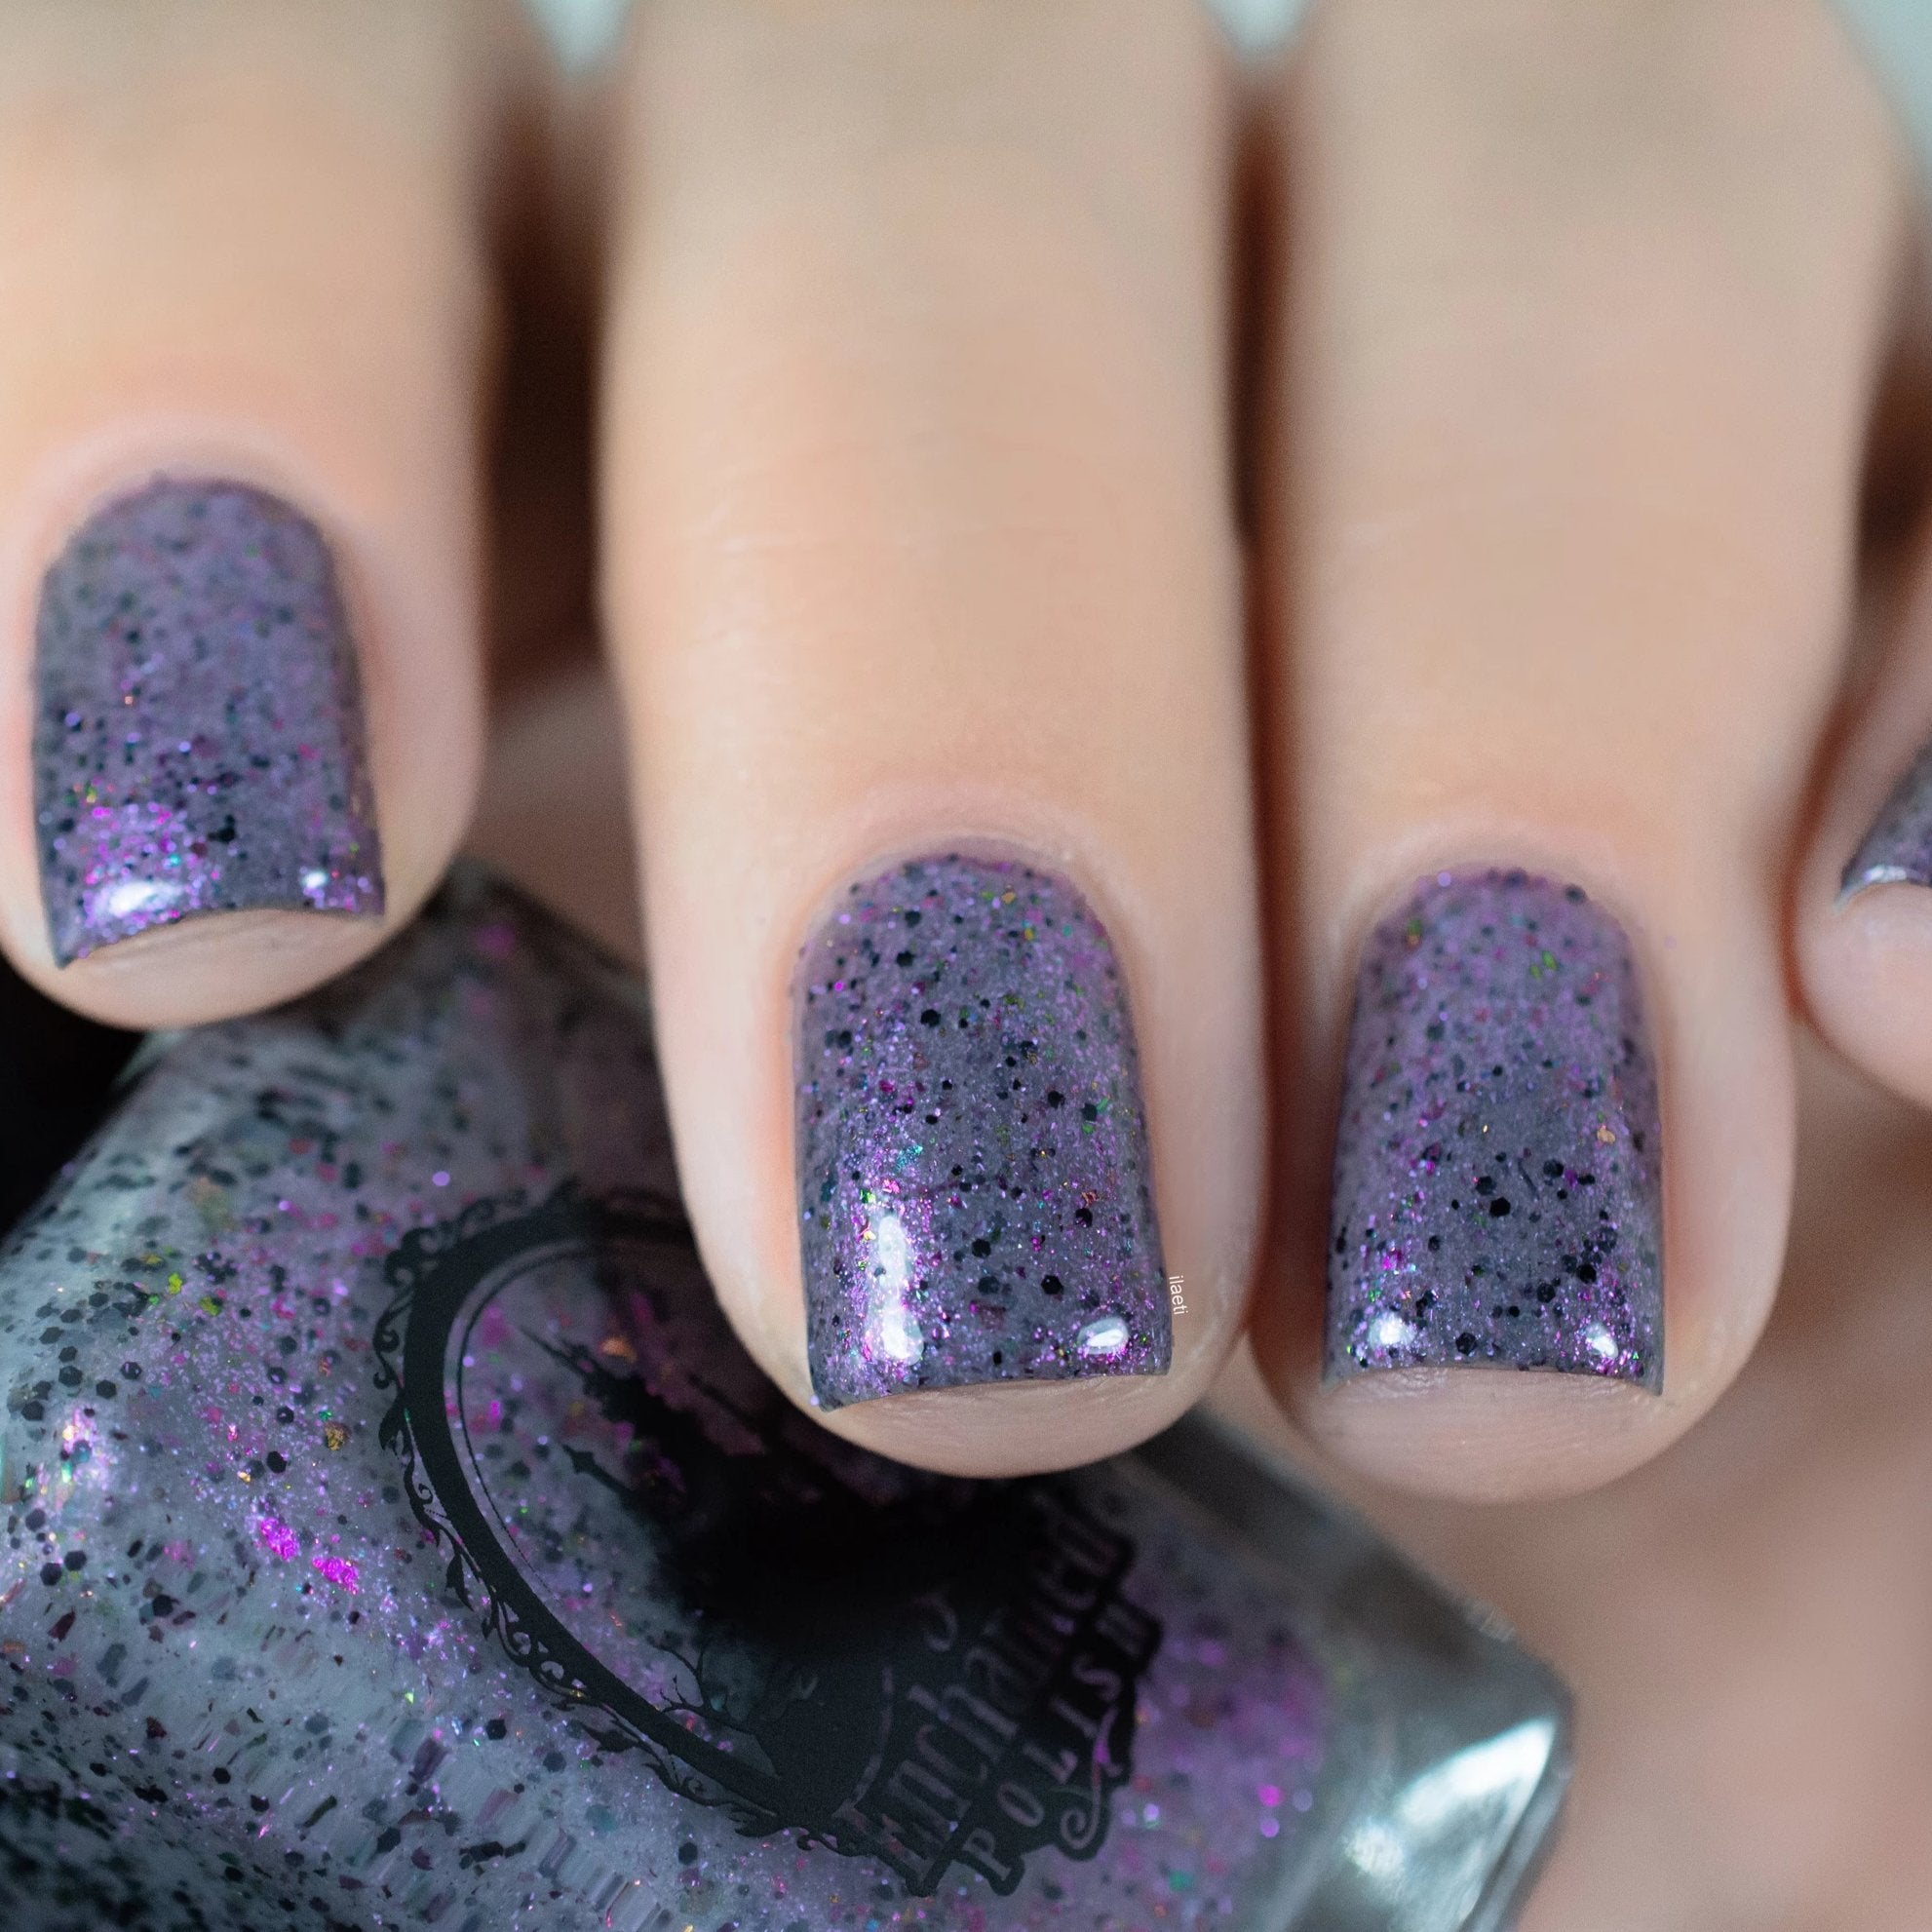 *PRE-SALE* Enchanted Polish - Season of the Witch